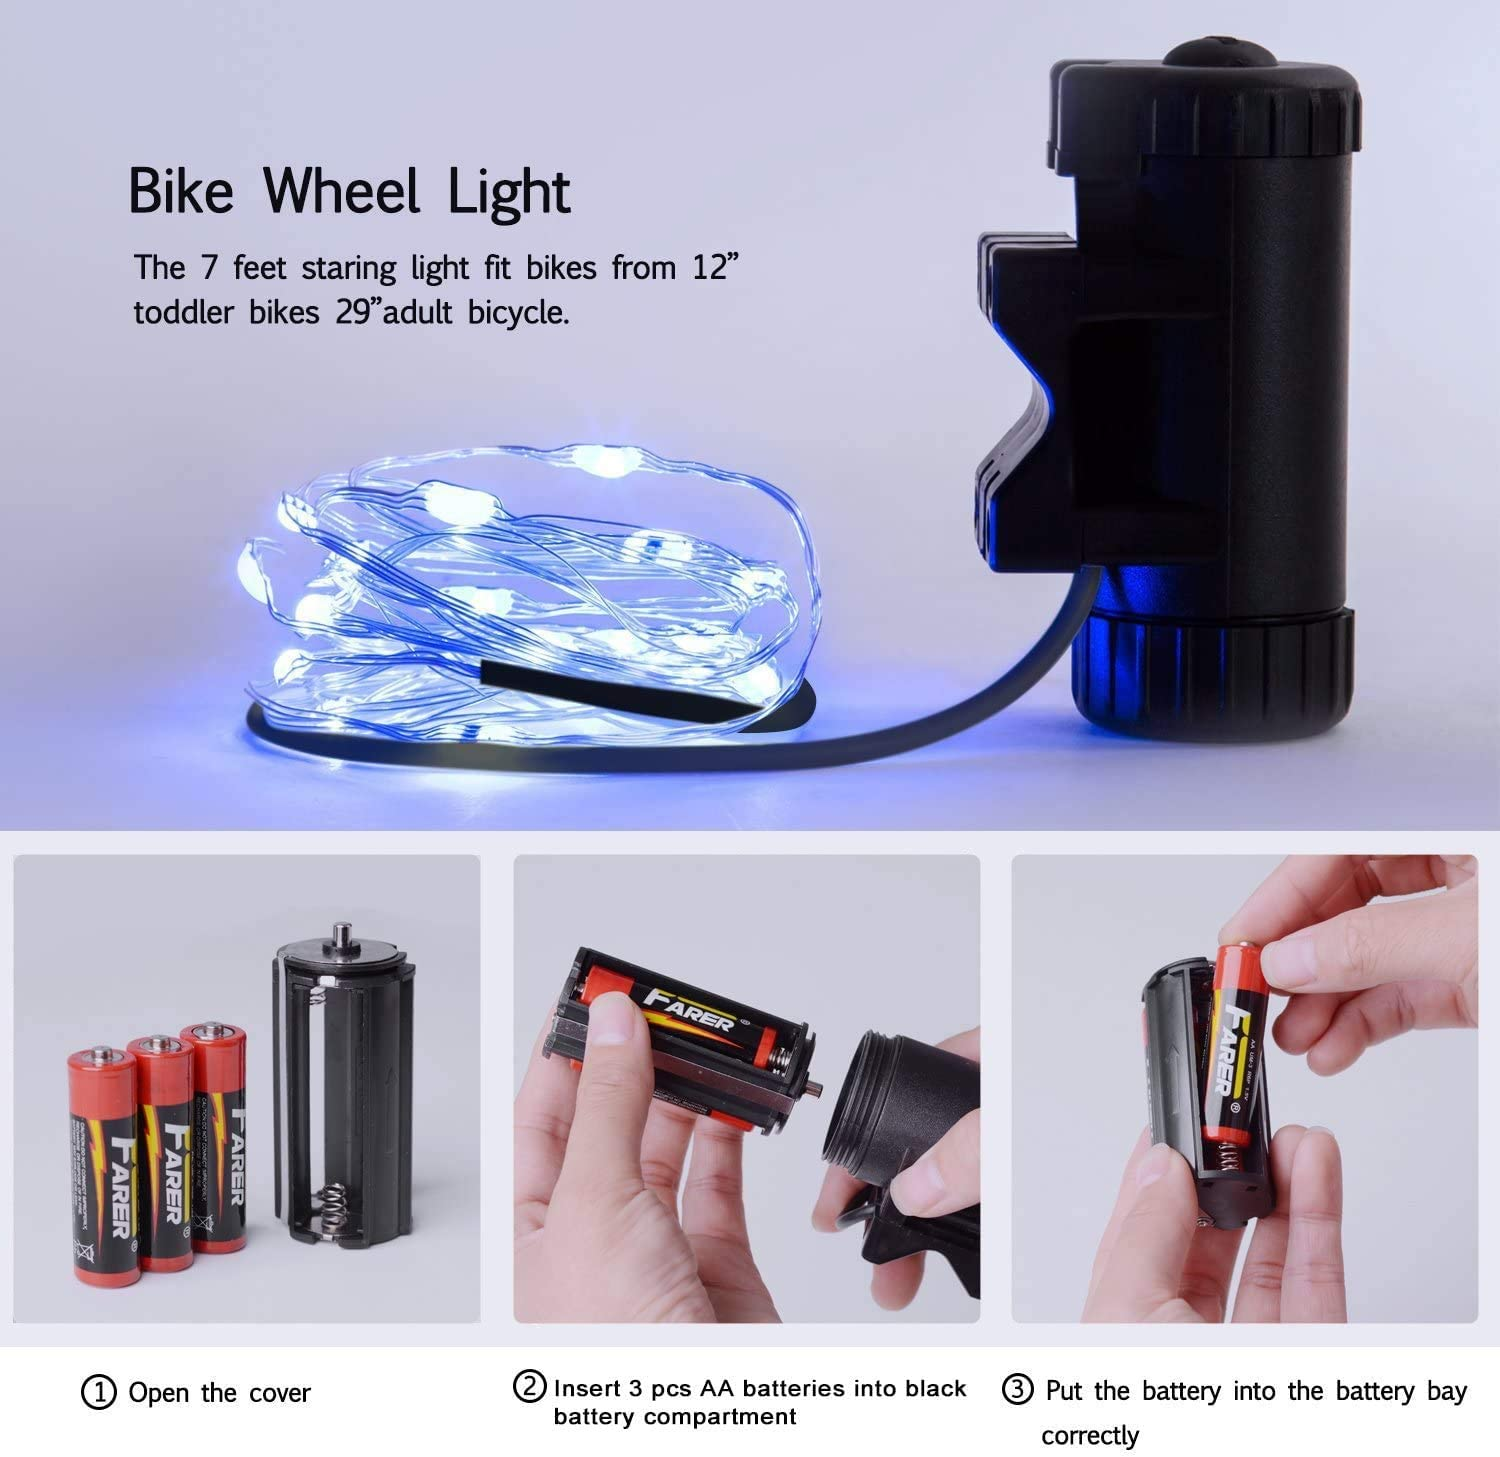 7 Colors in 1 Bike Lights,Safety at Night,Switch 9 Modes LED Bike Accessories Lights Evaduol Bike Wheel Lights USB Rechargeable 1 Pack